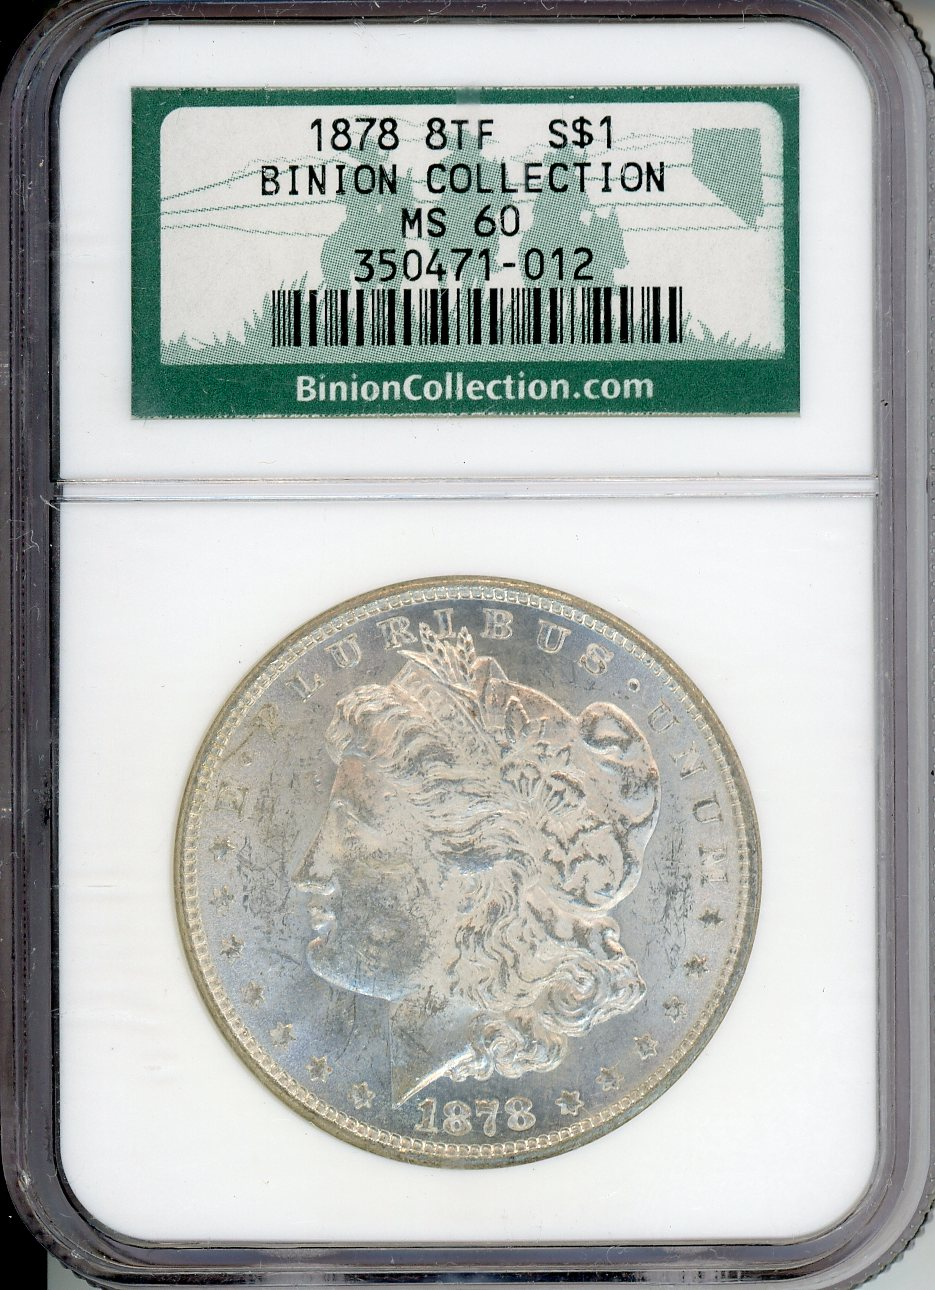 1878 8TF $1 NGC MS60 BINION COLLECTION